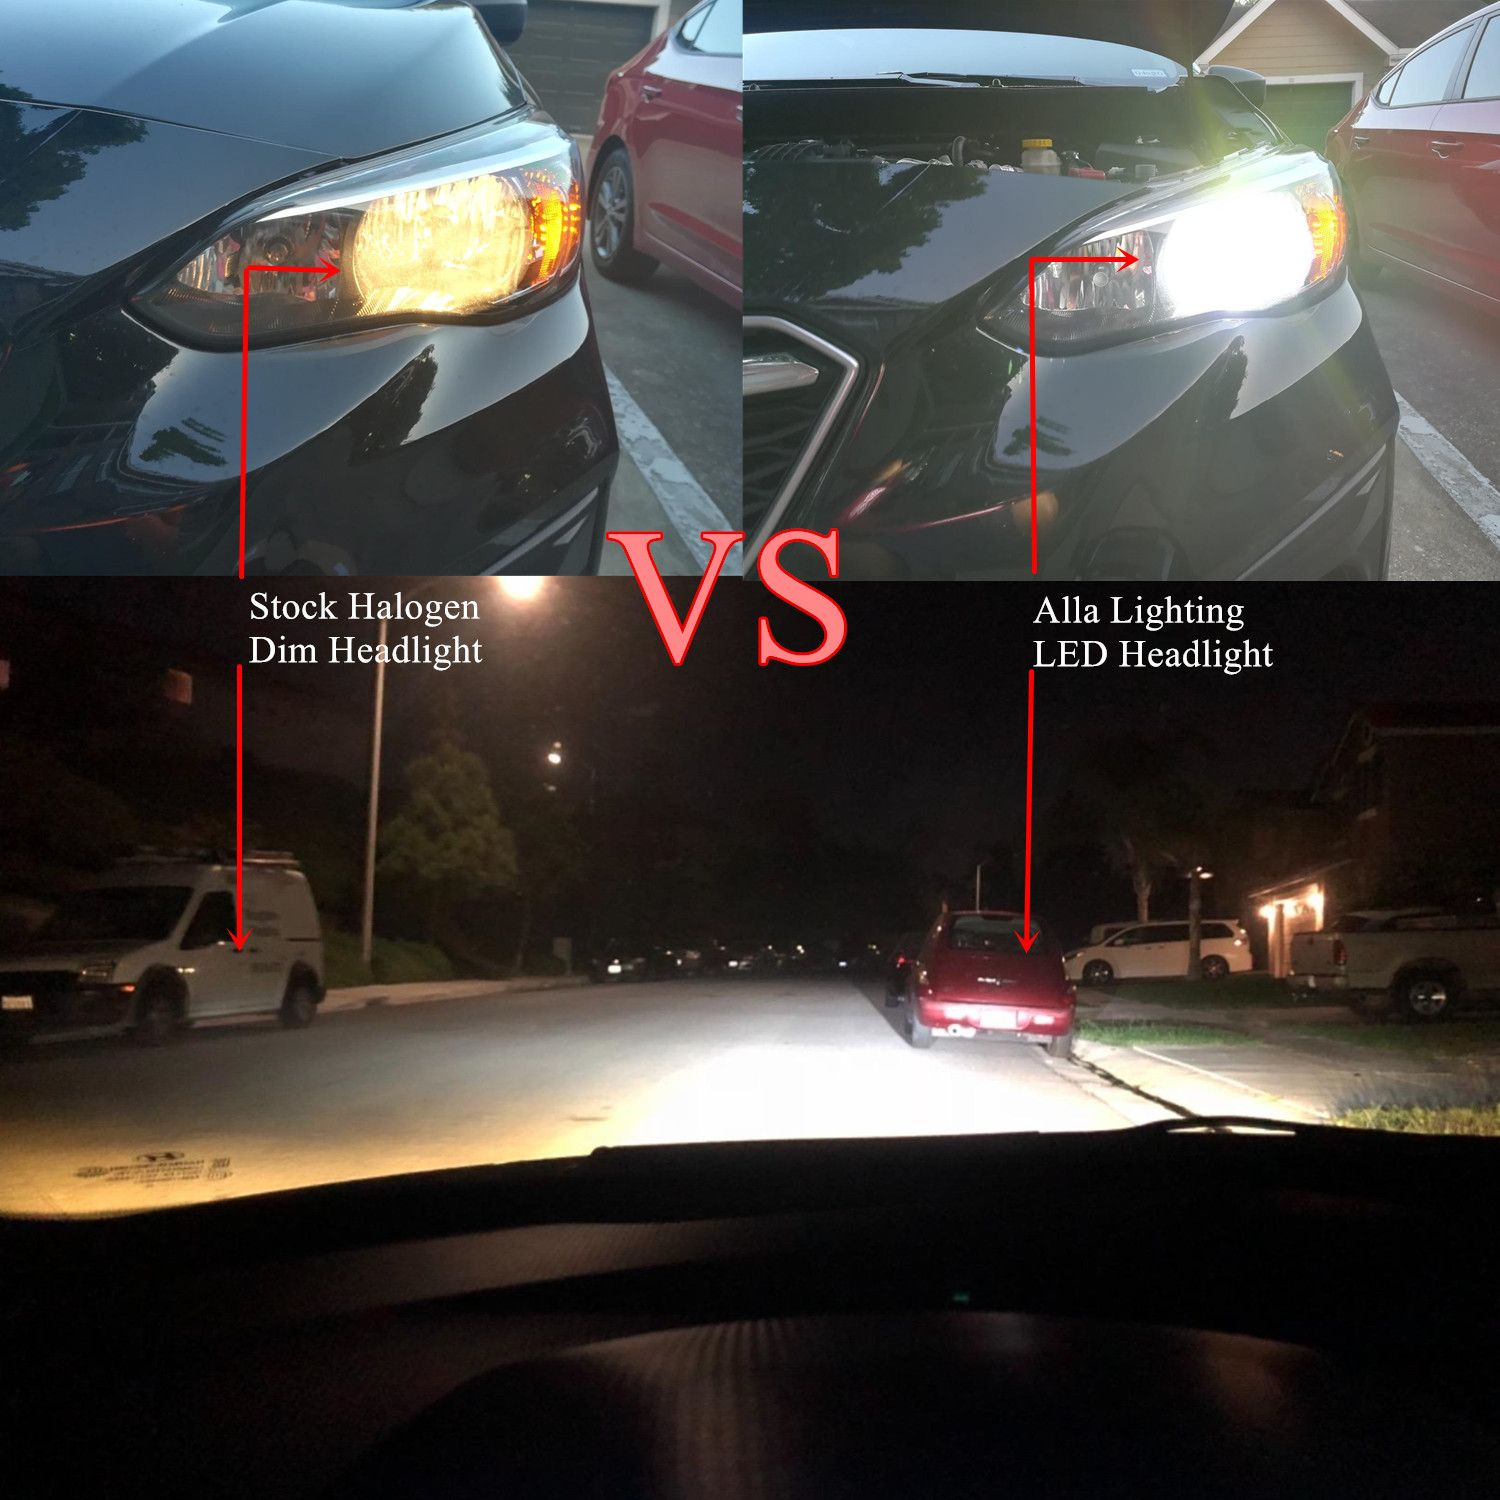 Big Difference For Halogen Headlamp Vs Alla Lighting Led Headlight